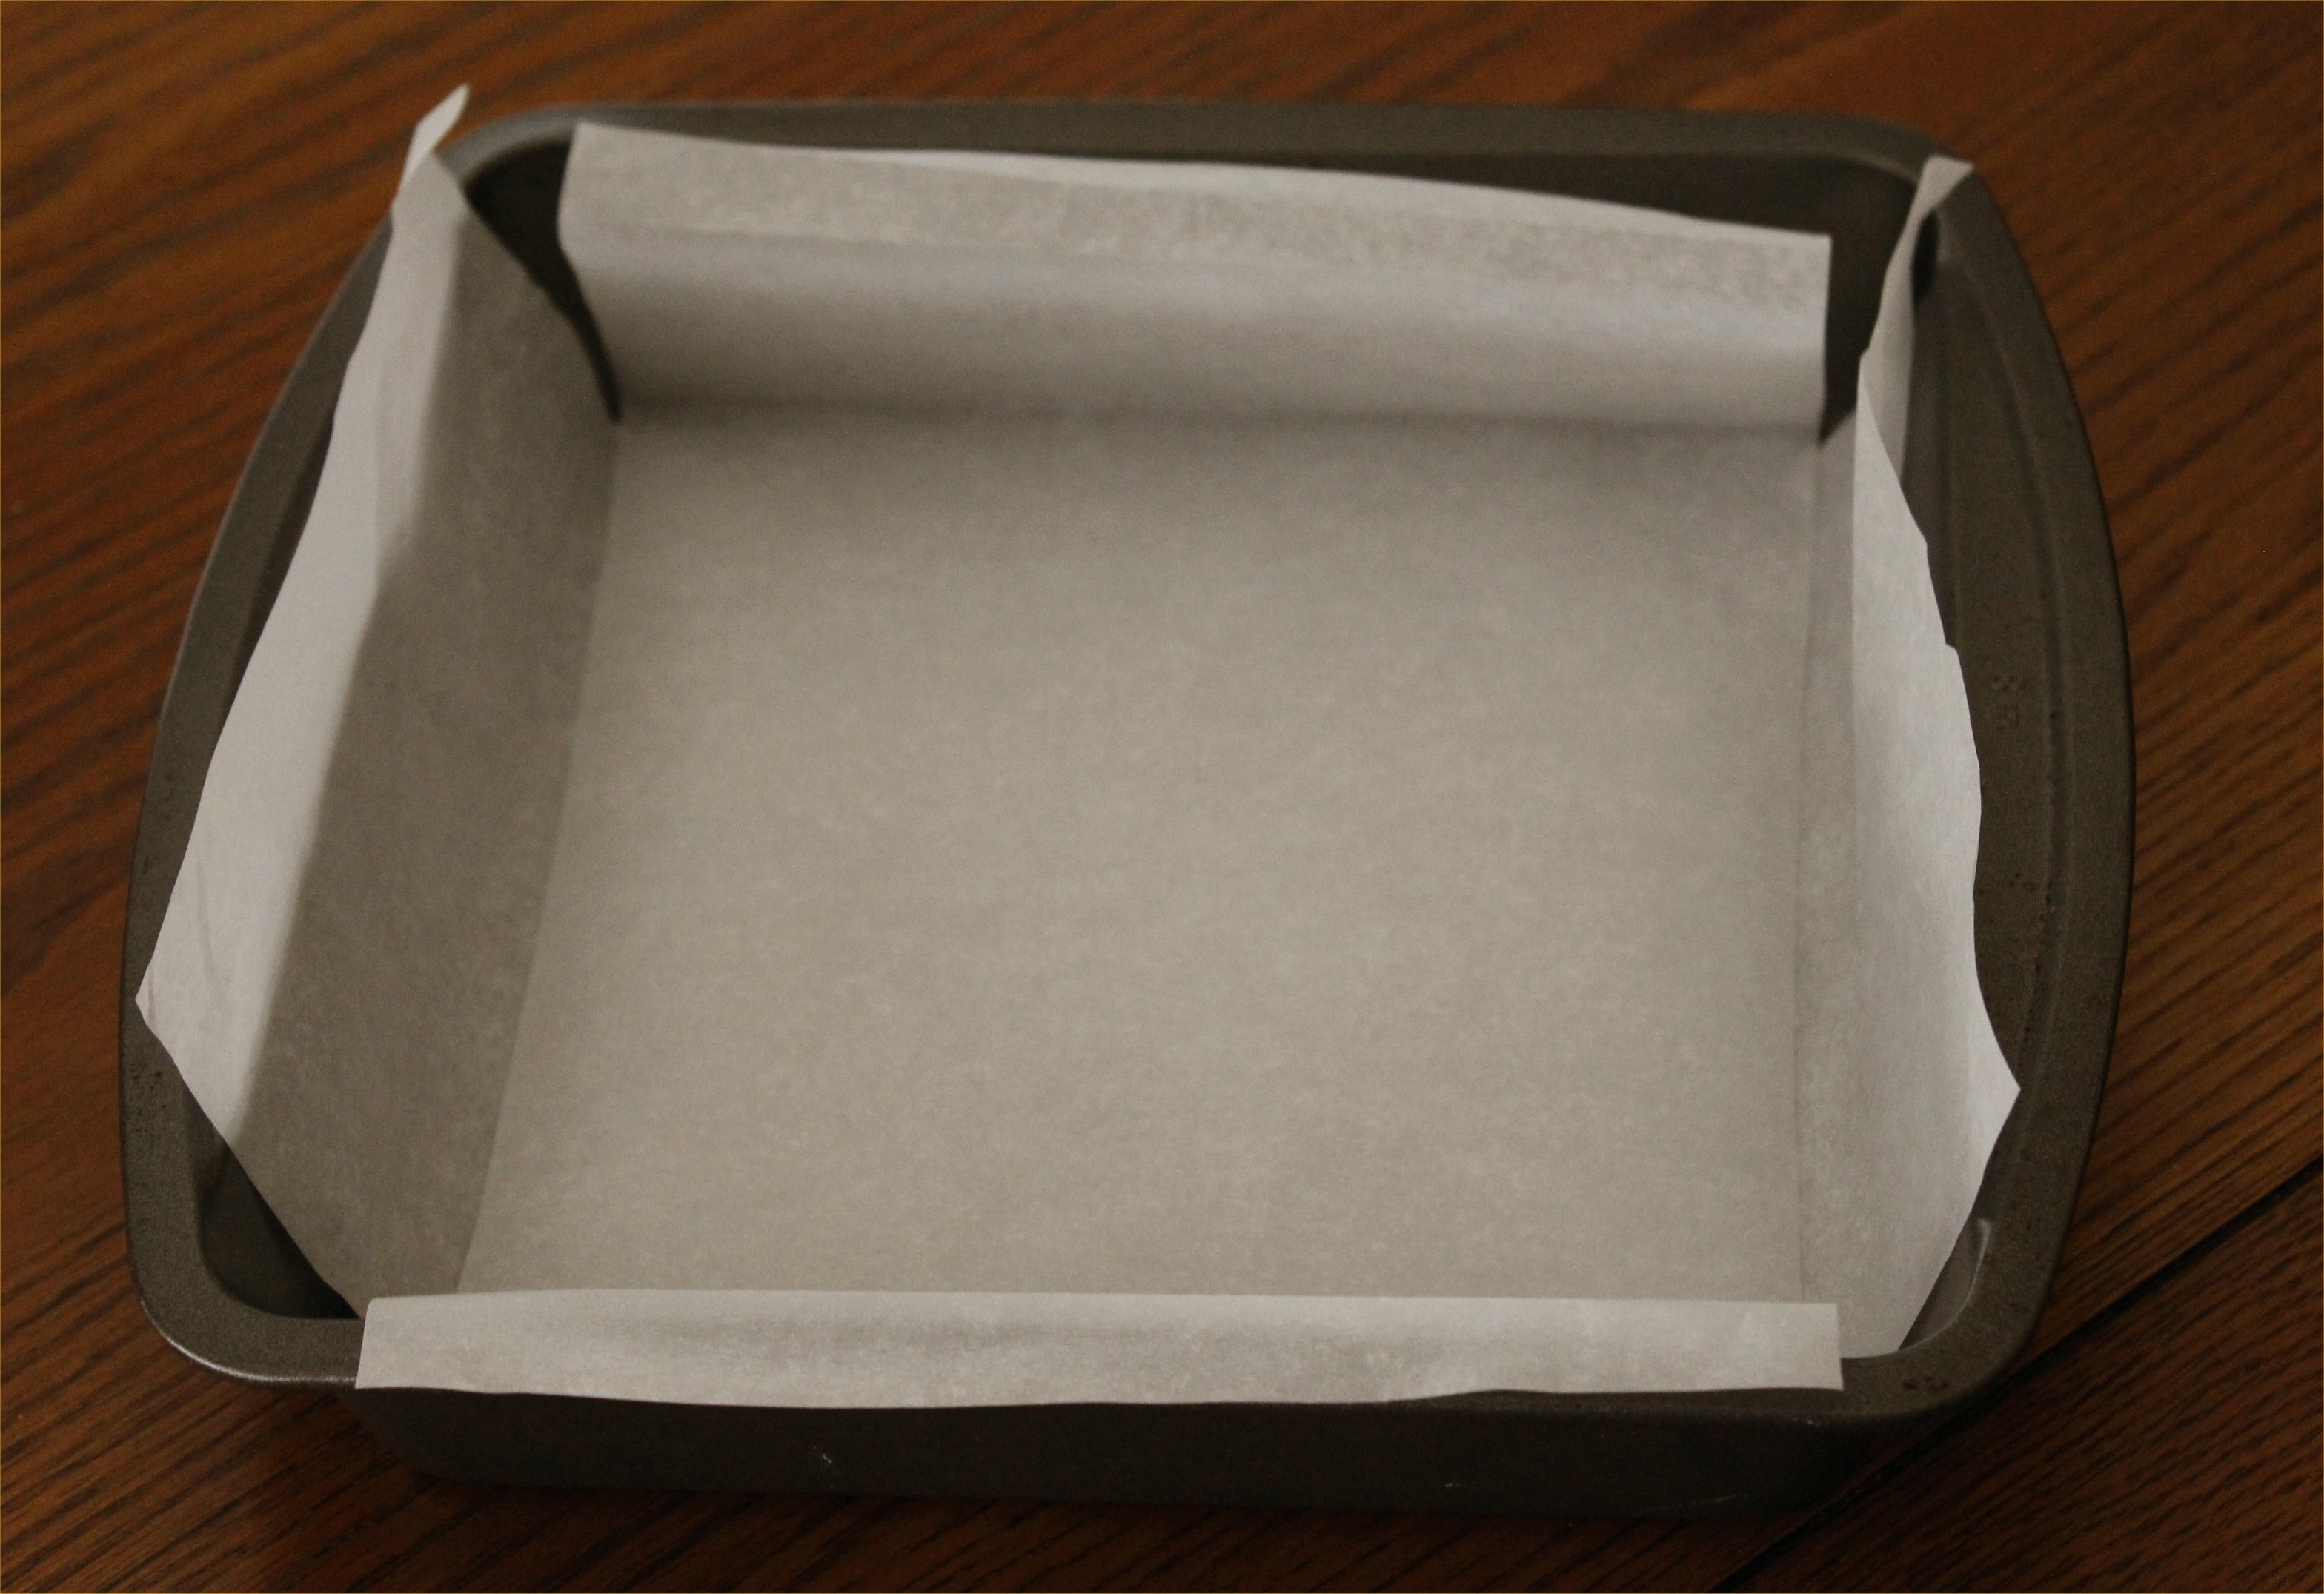 Communication on this topic: How to Line a Square Baking Pan, how-to-line-a-square-baking-pan/